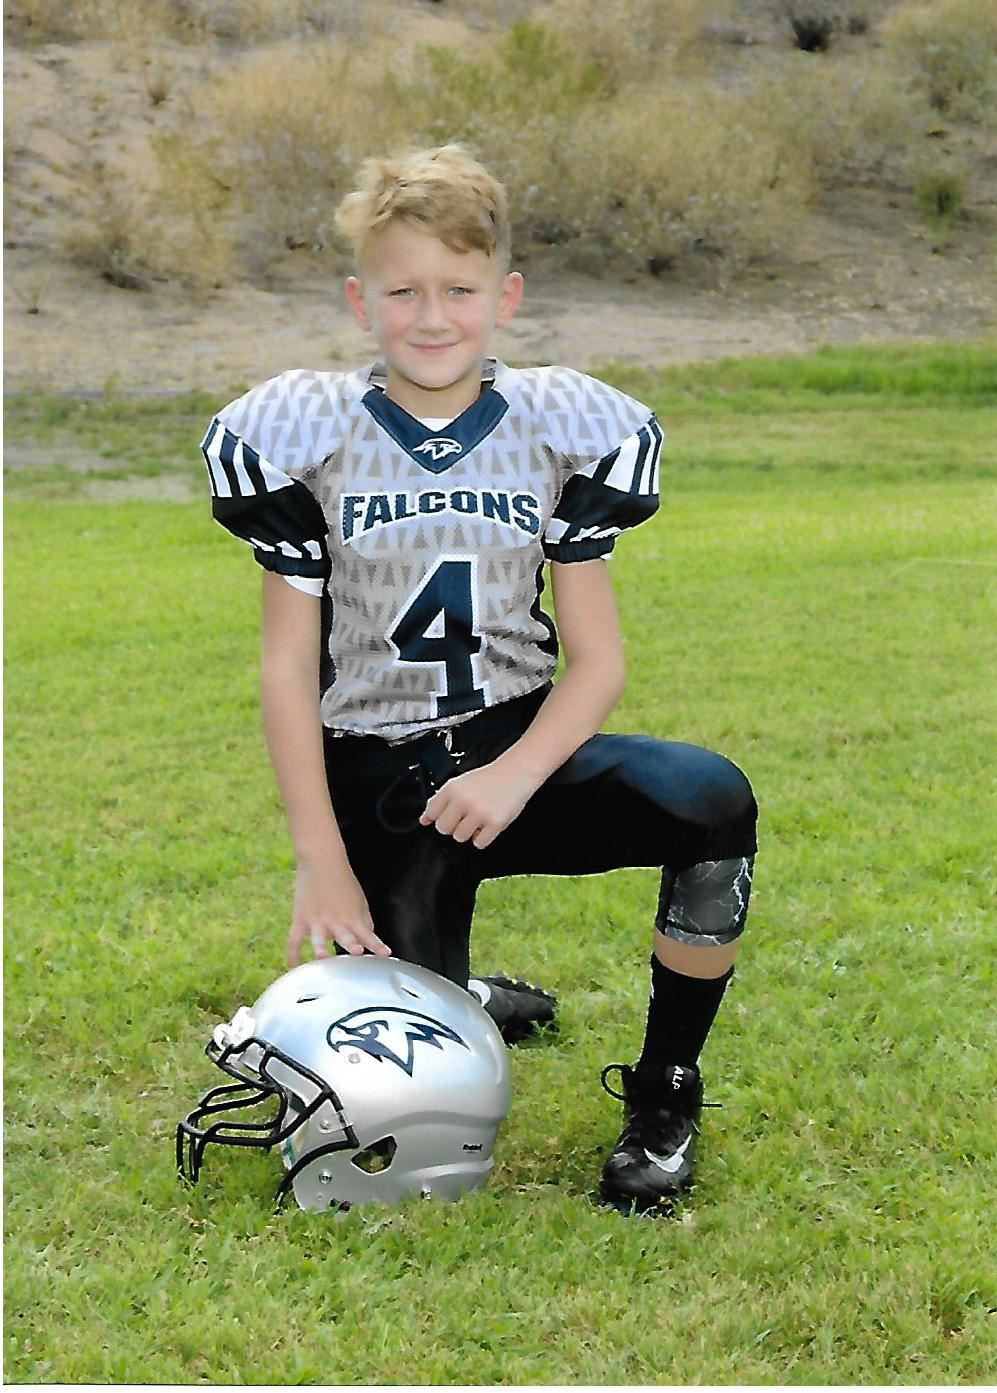 Cave Creek Falcons - Mitey Mites - Mitey Mite Falcons